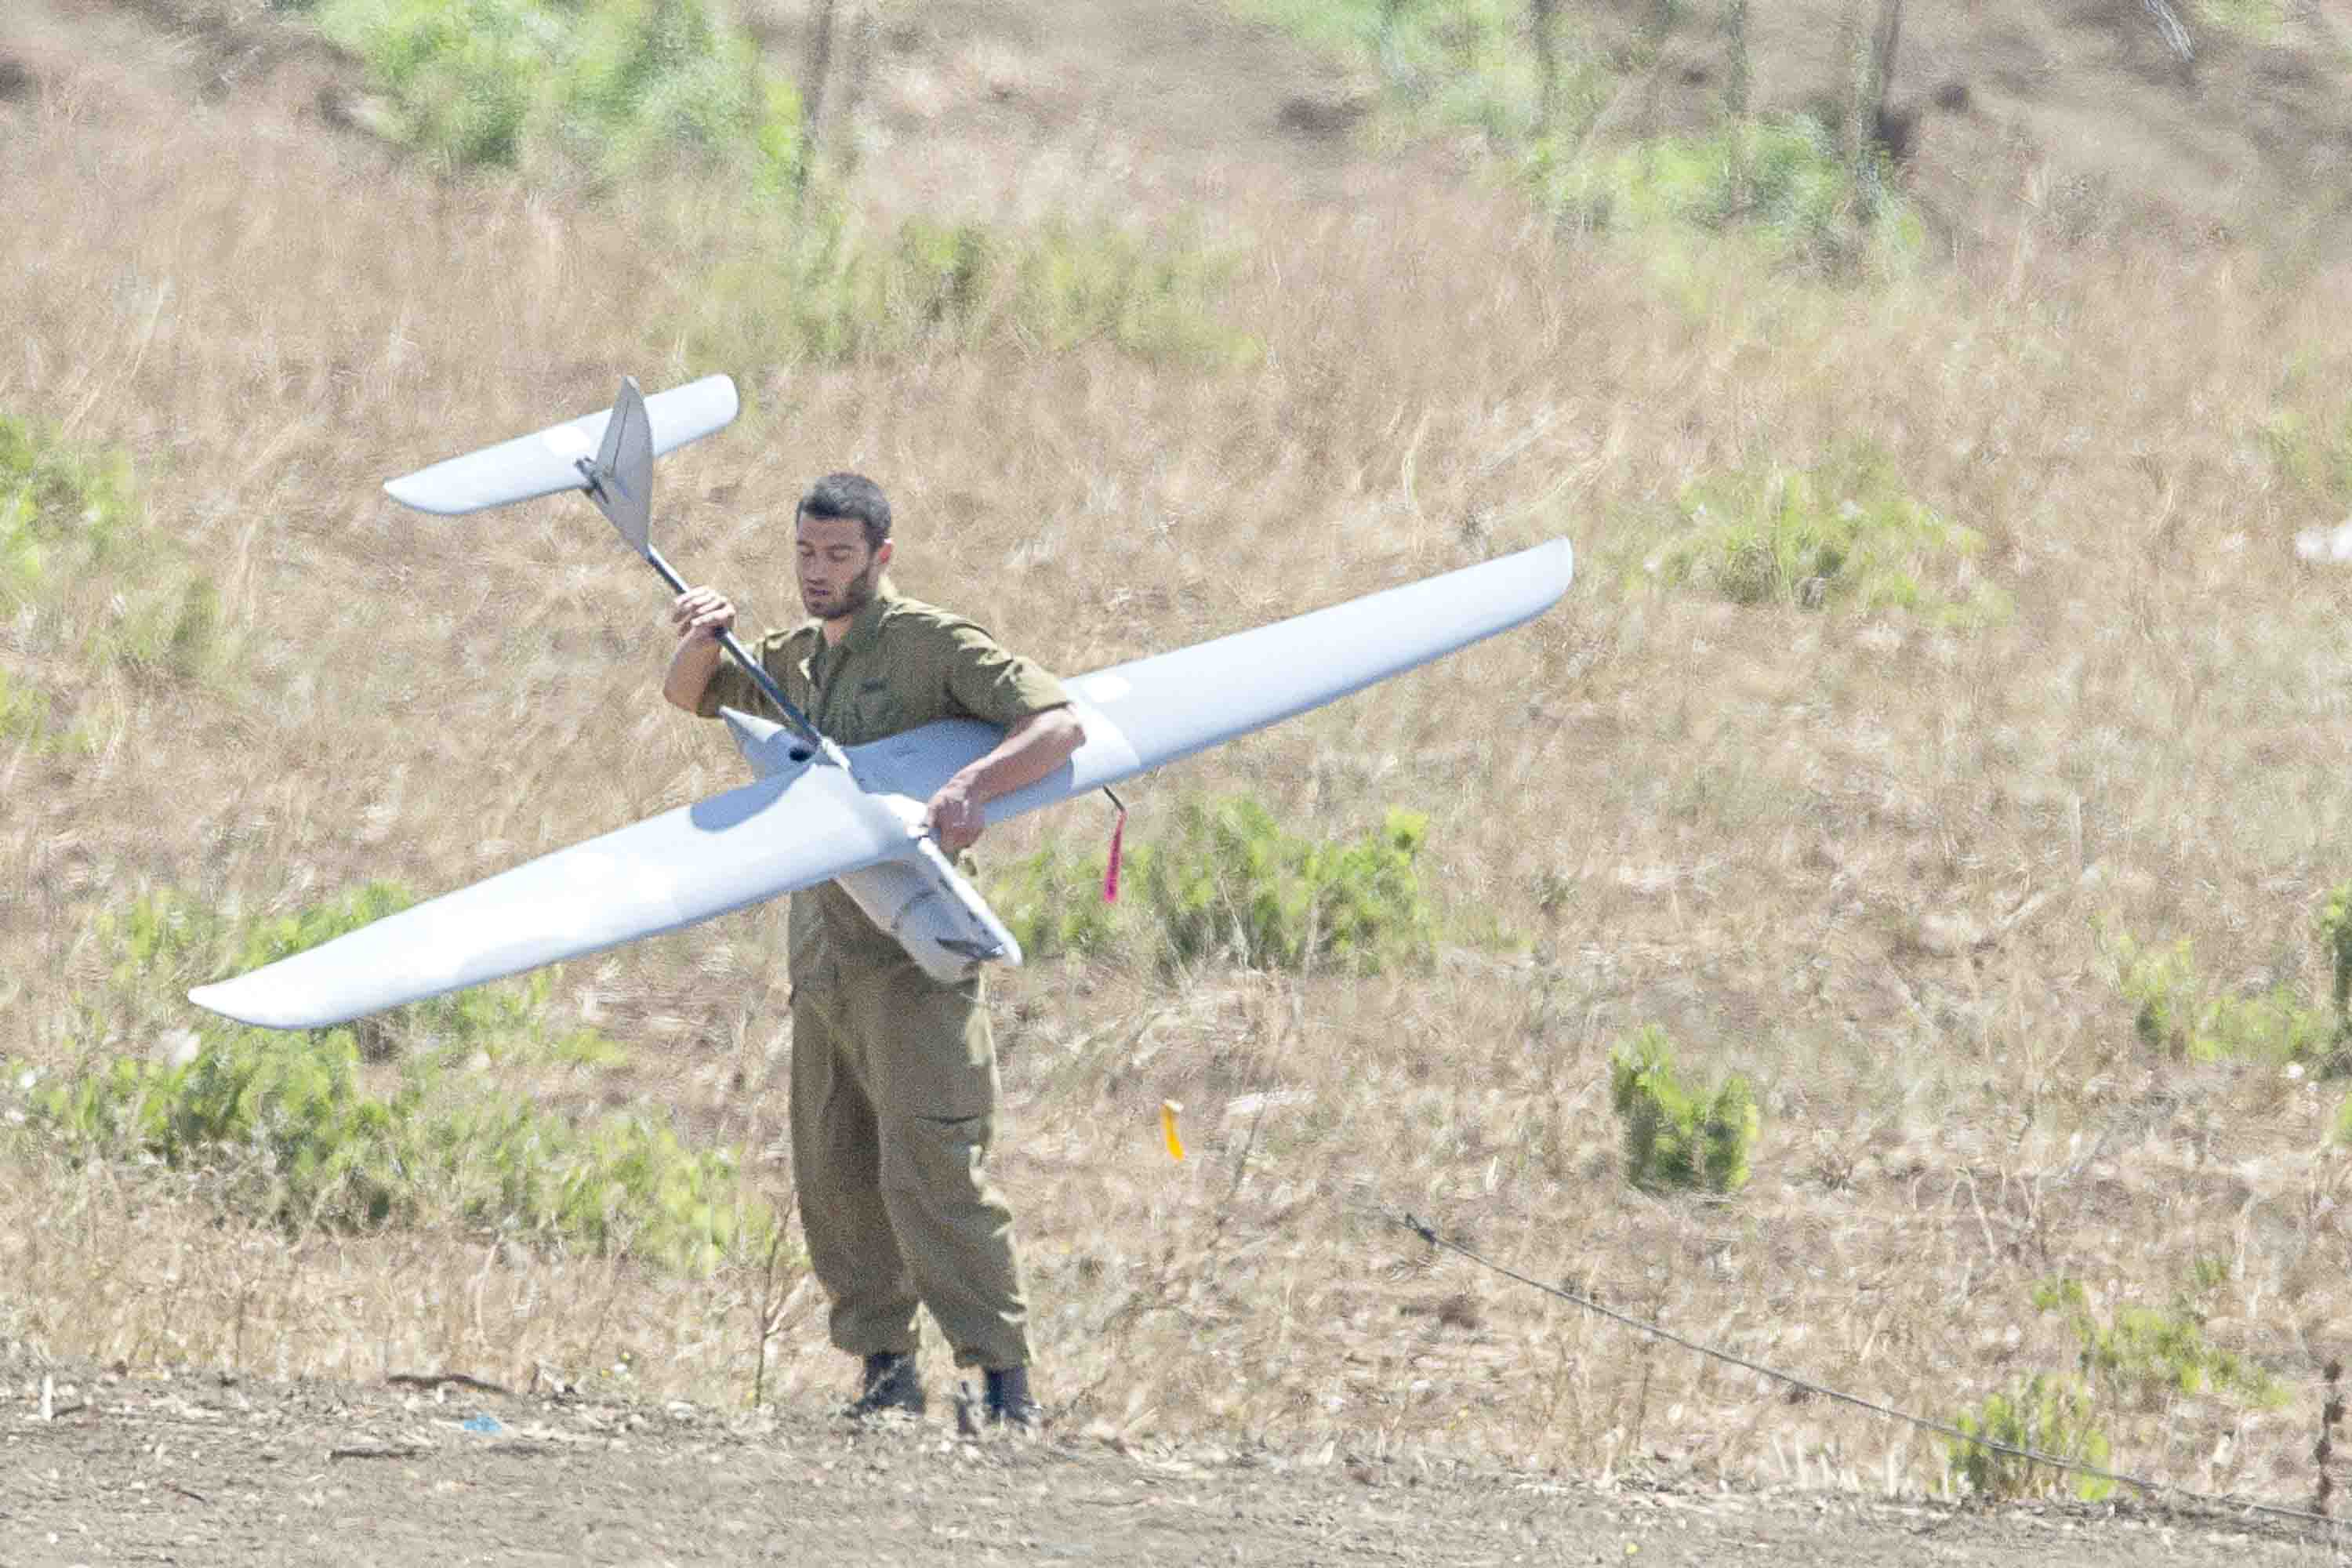 An Israeli soldier launches an unmanned aerial drone near the Quneitra crossing, the only border crossing with Syria in the Golan Heights. (AFP)